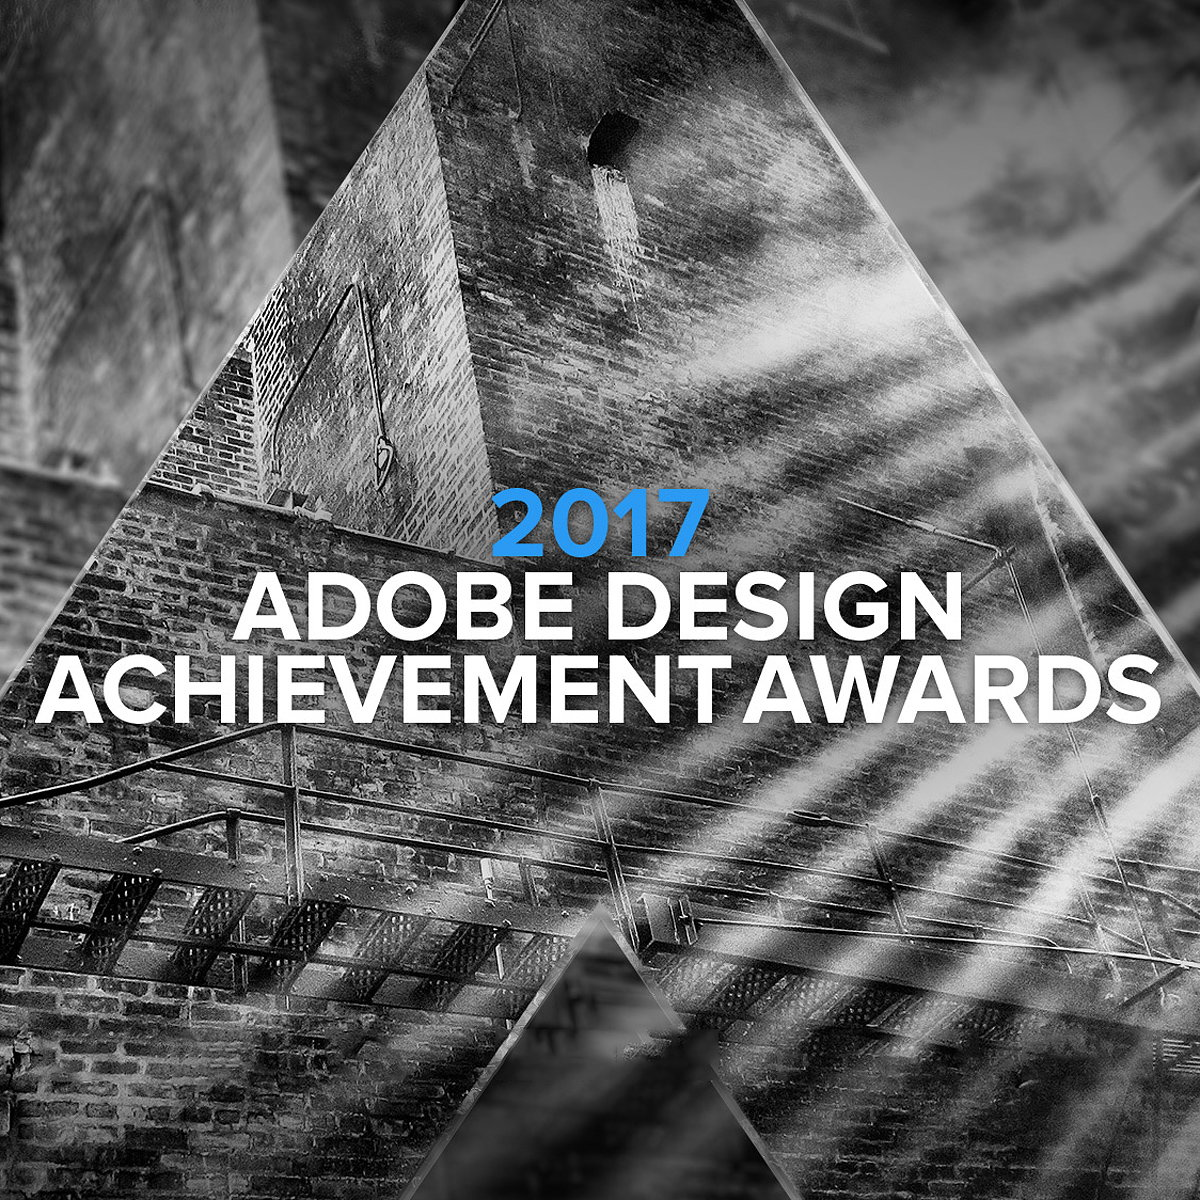 2017 Adobe Design Achievement Awards